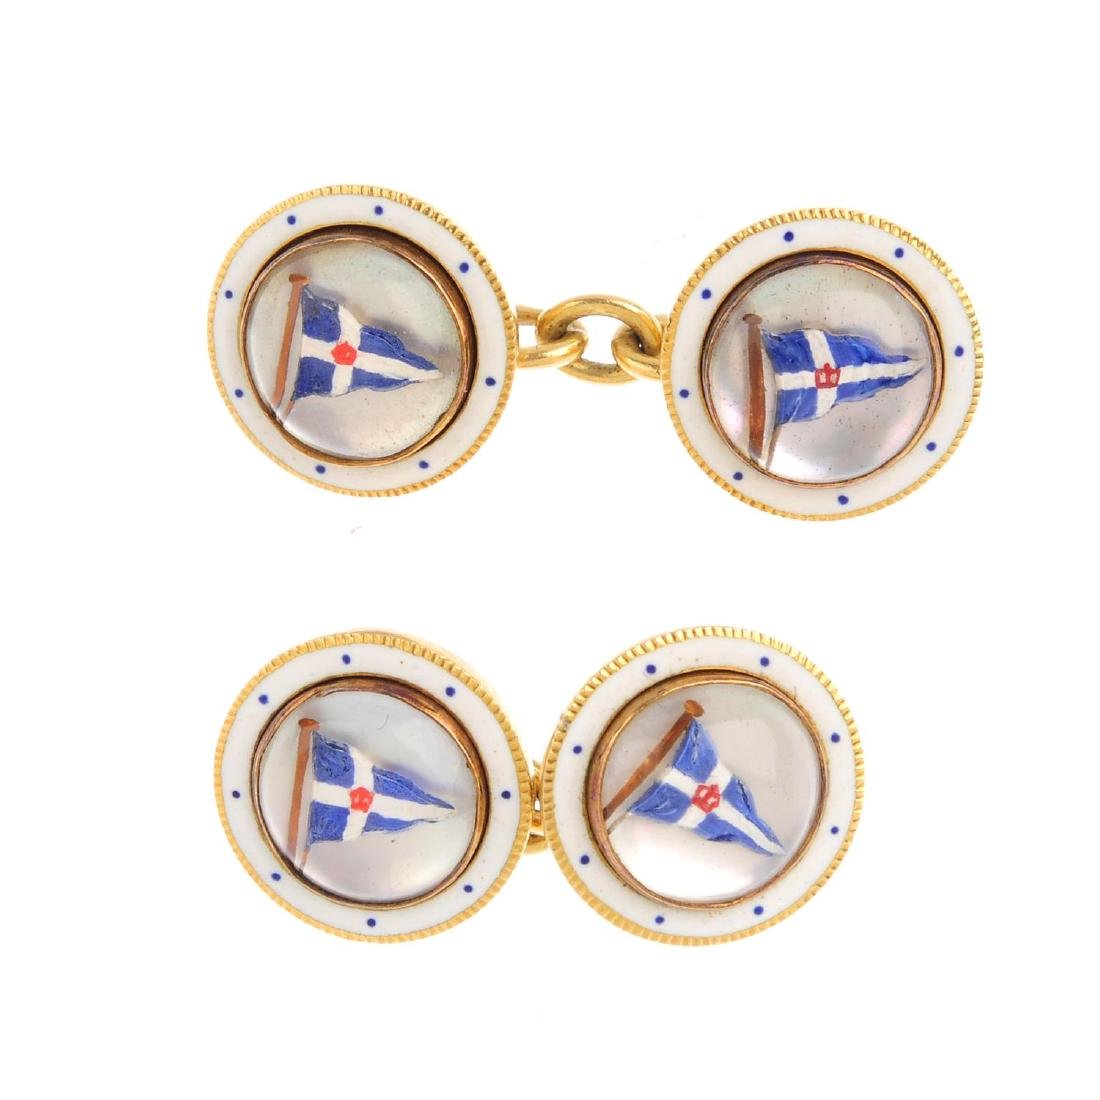 A pair of early 20th century enamel cufflinks. Of